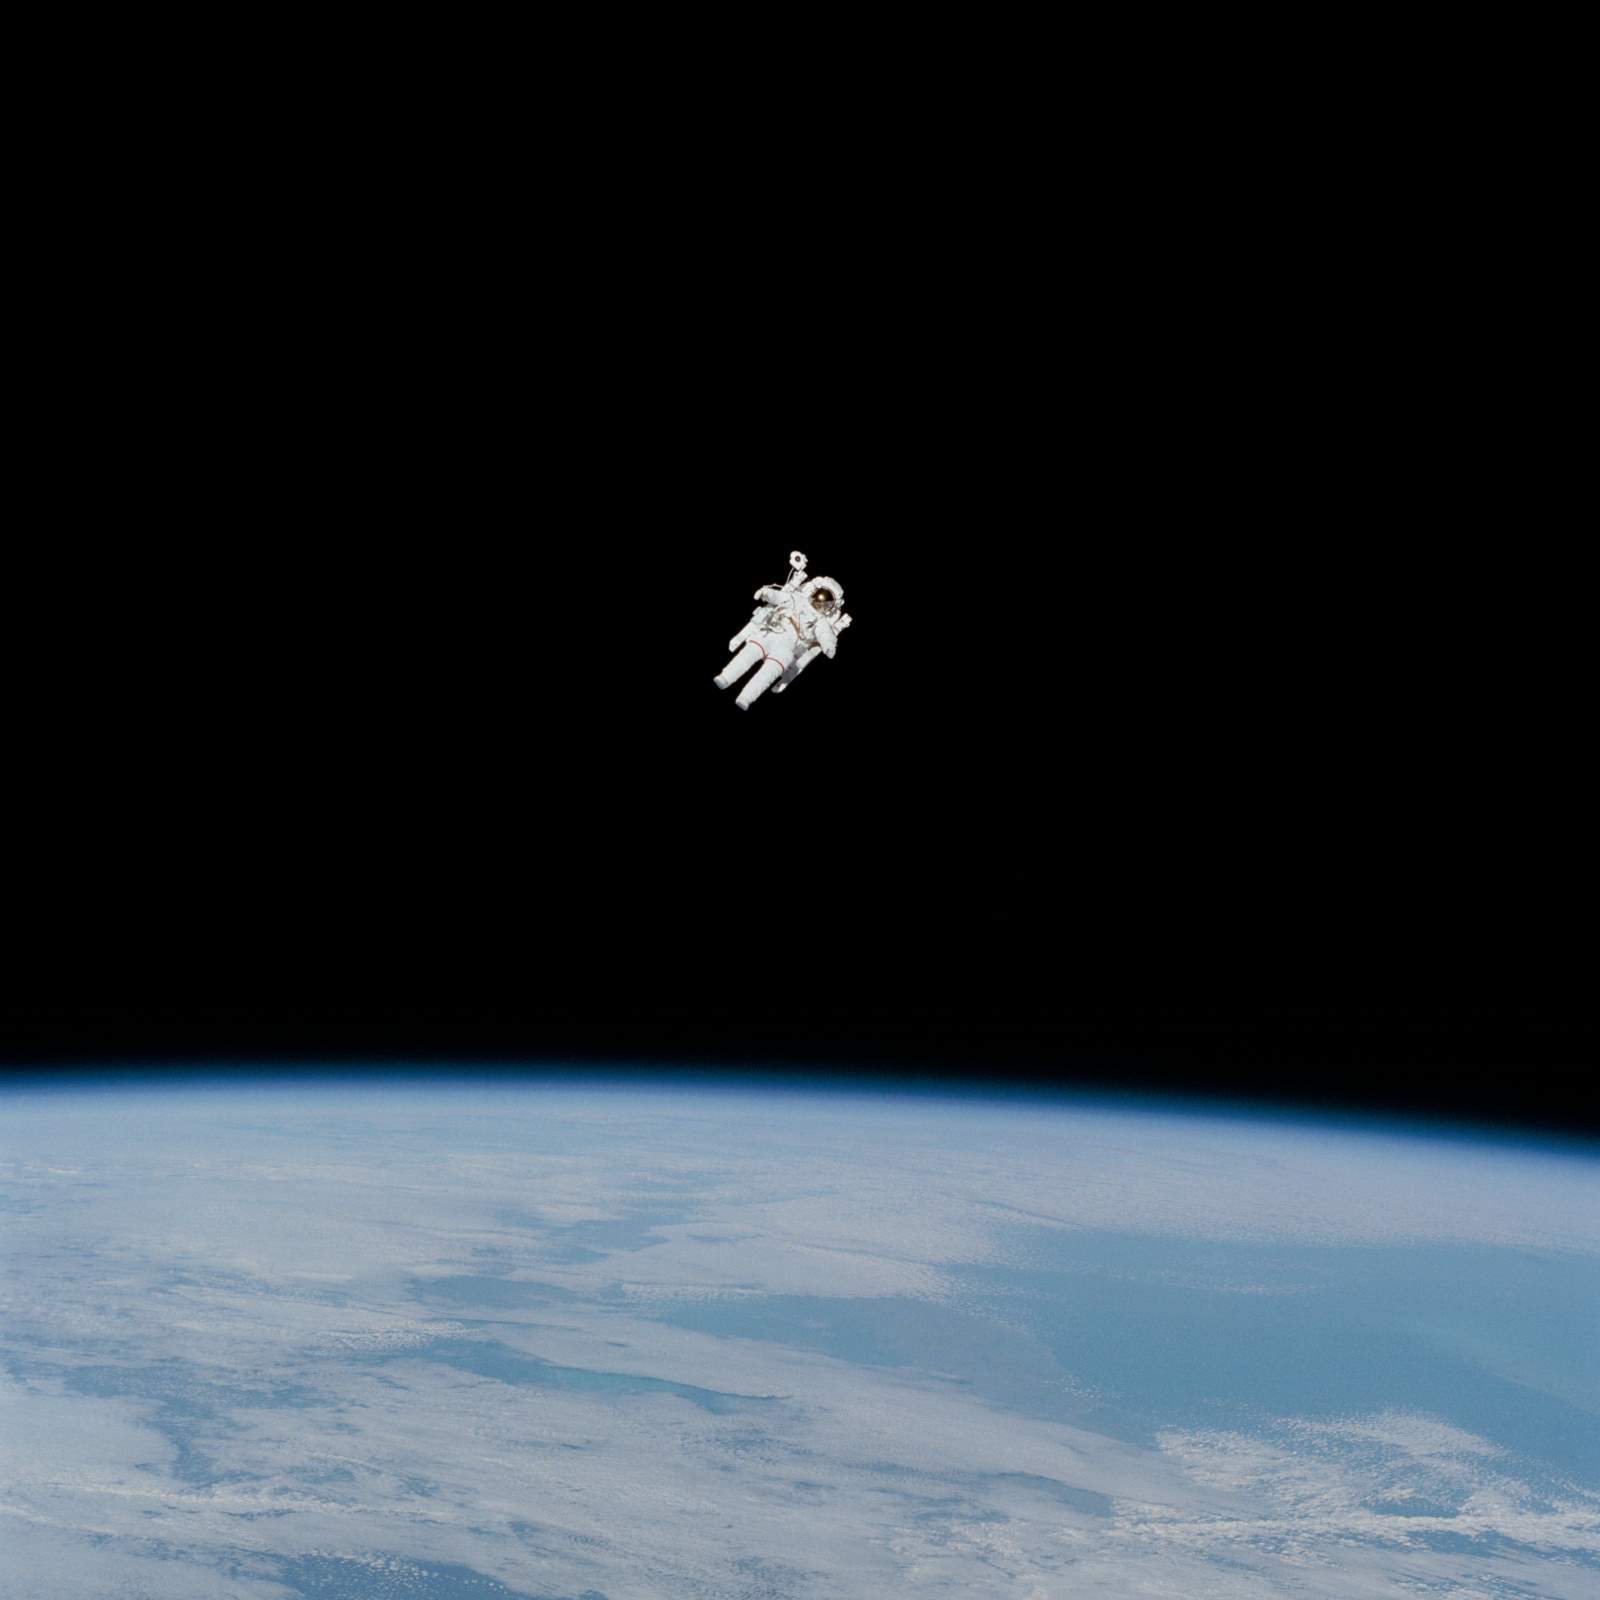 """Today, we're celebrating Earth Day by sharing this incredible photo of the first untethered spacewalk, conducted by NASA astronaut Bruce McCandless on February 7, 1984. Captured by his fellow crew members aboard the Space Shuttle Challenger, this photo shows McCandless approaching his maximum distance from the vehicle. Following the walk, when asked to describe the panorama with the Earth below him, McCandless remarked: """"It really is beautiful.""""  Source imagery: NASA - National Aeronautics and Space Administration"""